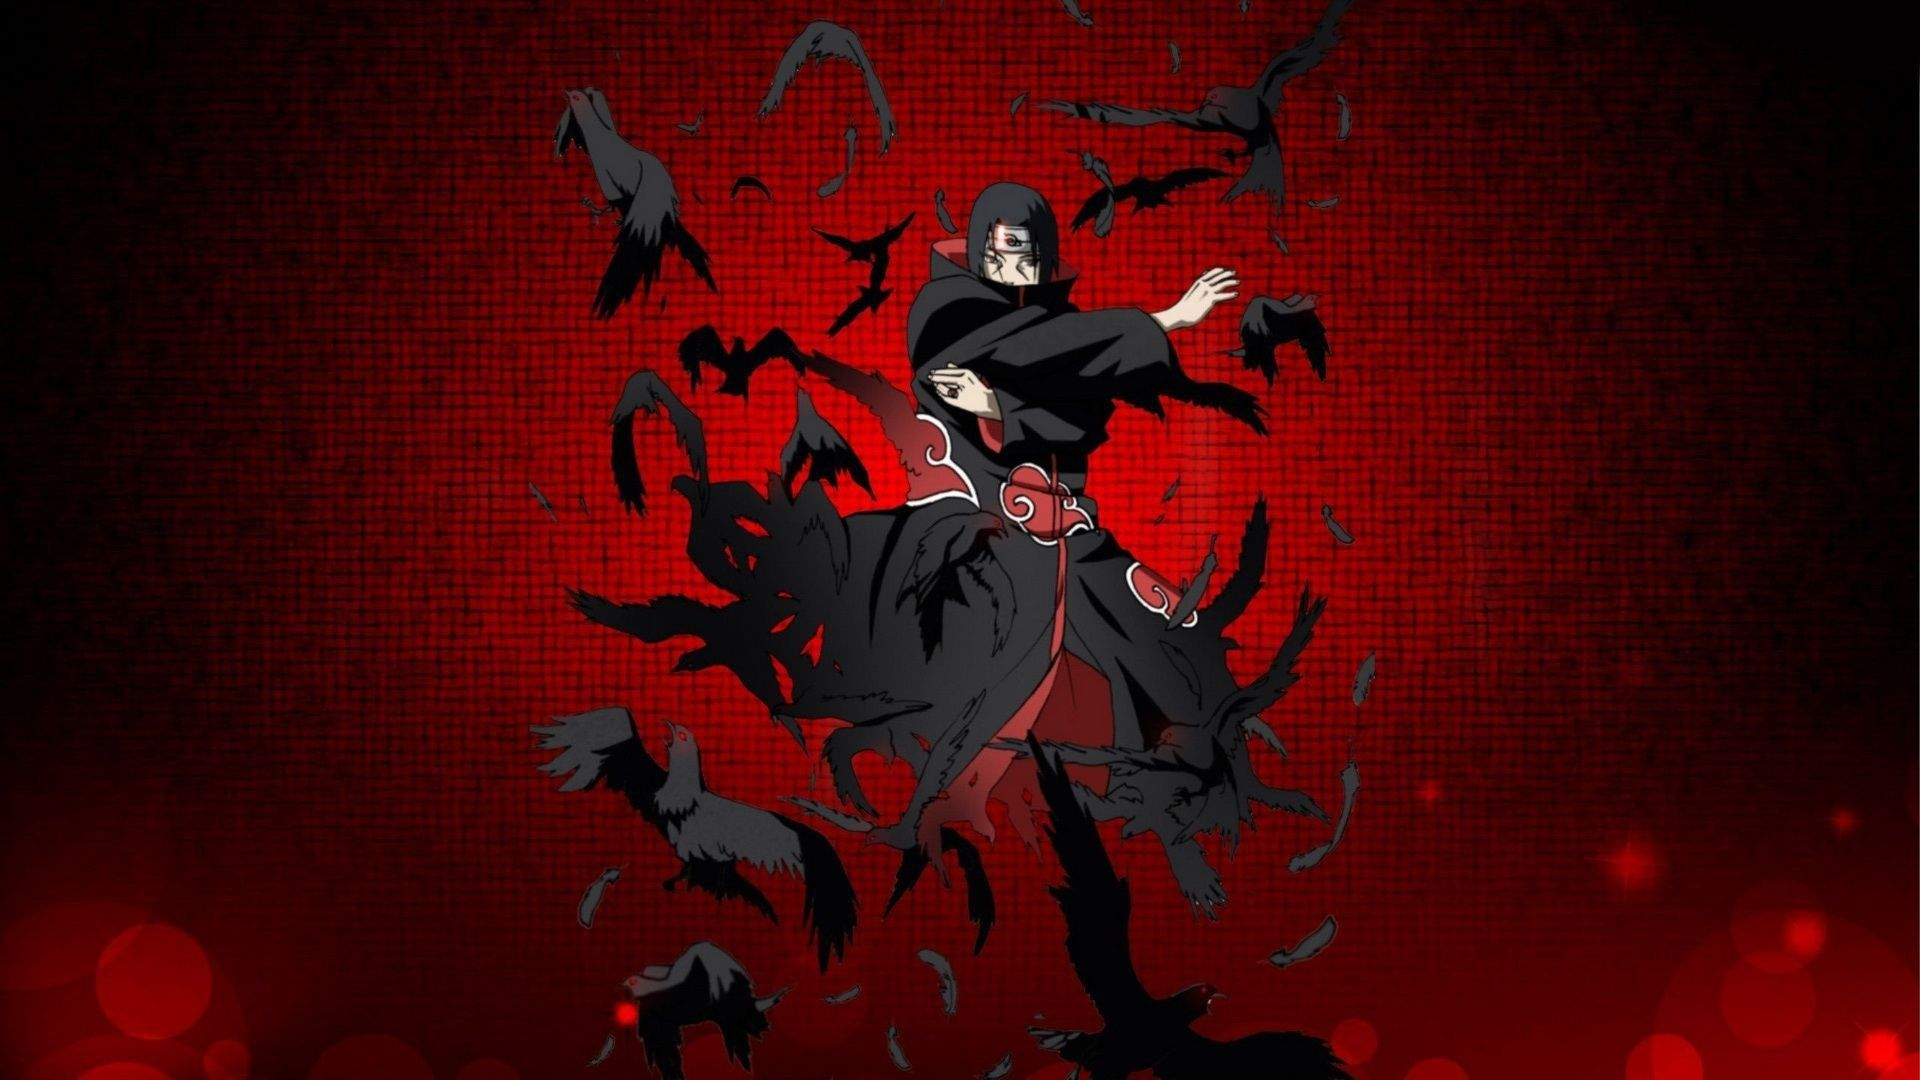 Awesome Itachi Wallpaper Iphone 7 Di 2020 Gambar